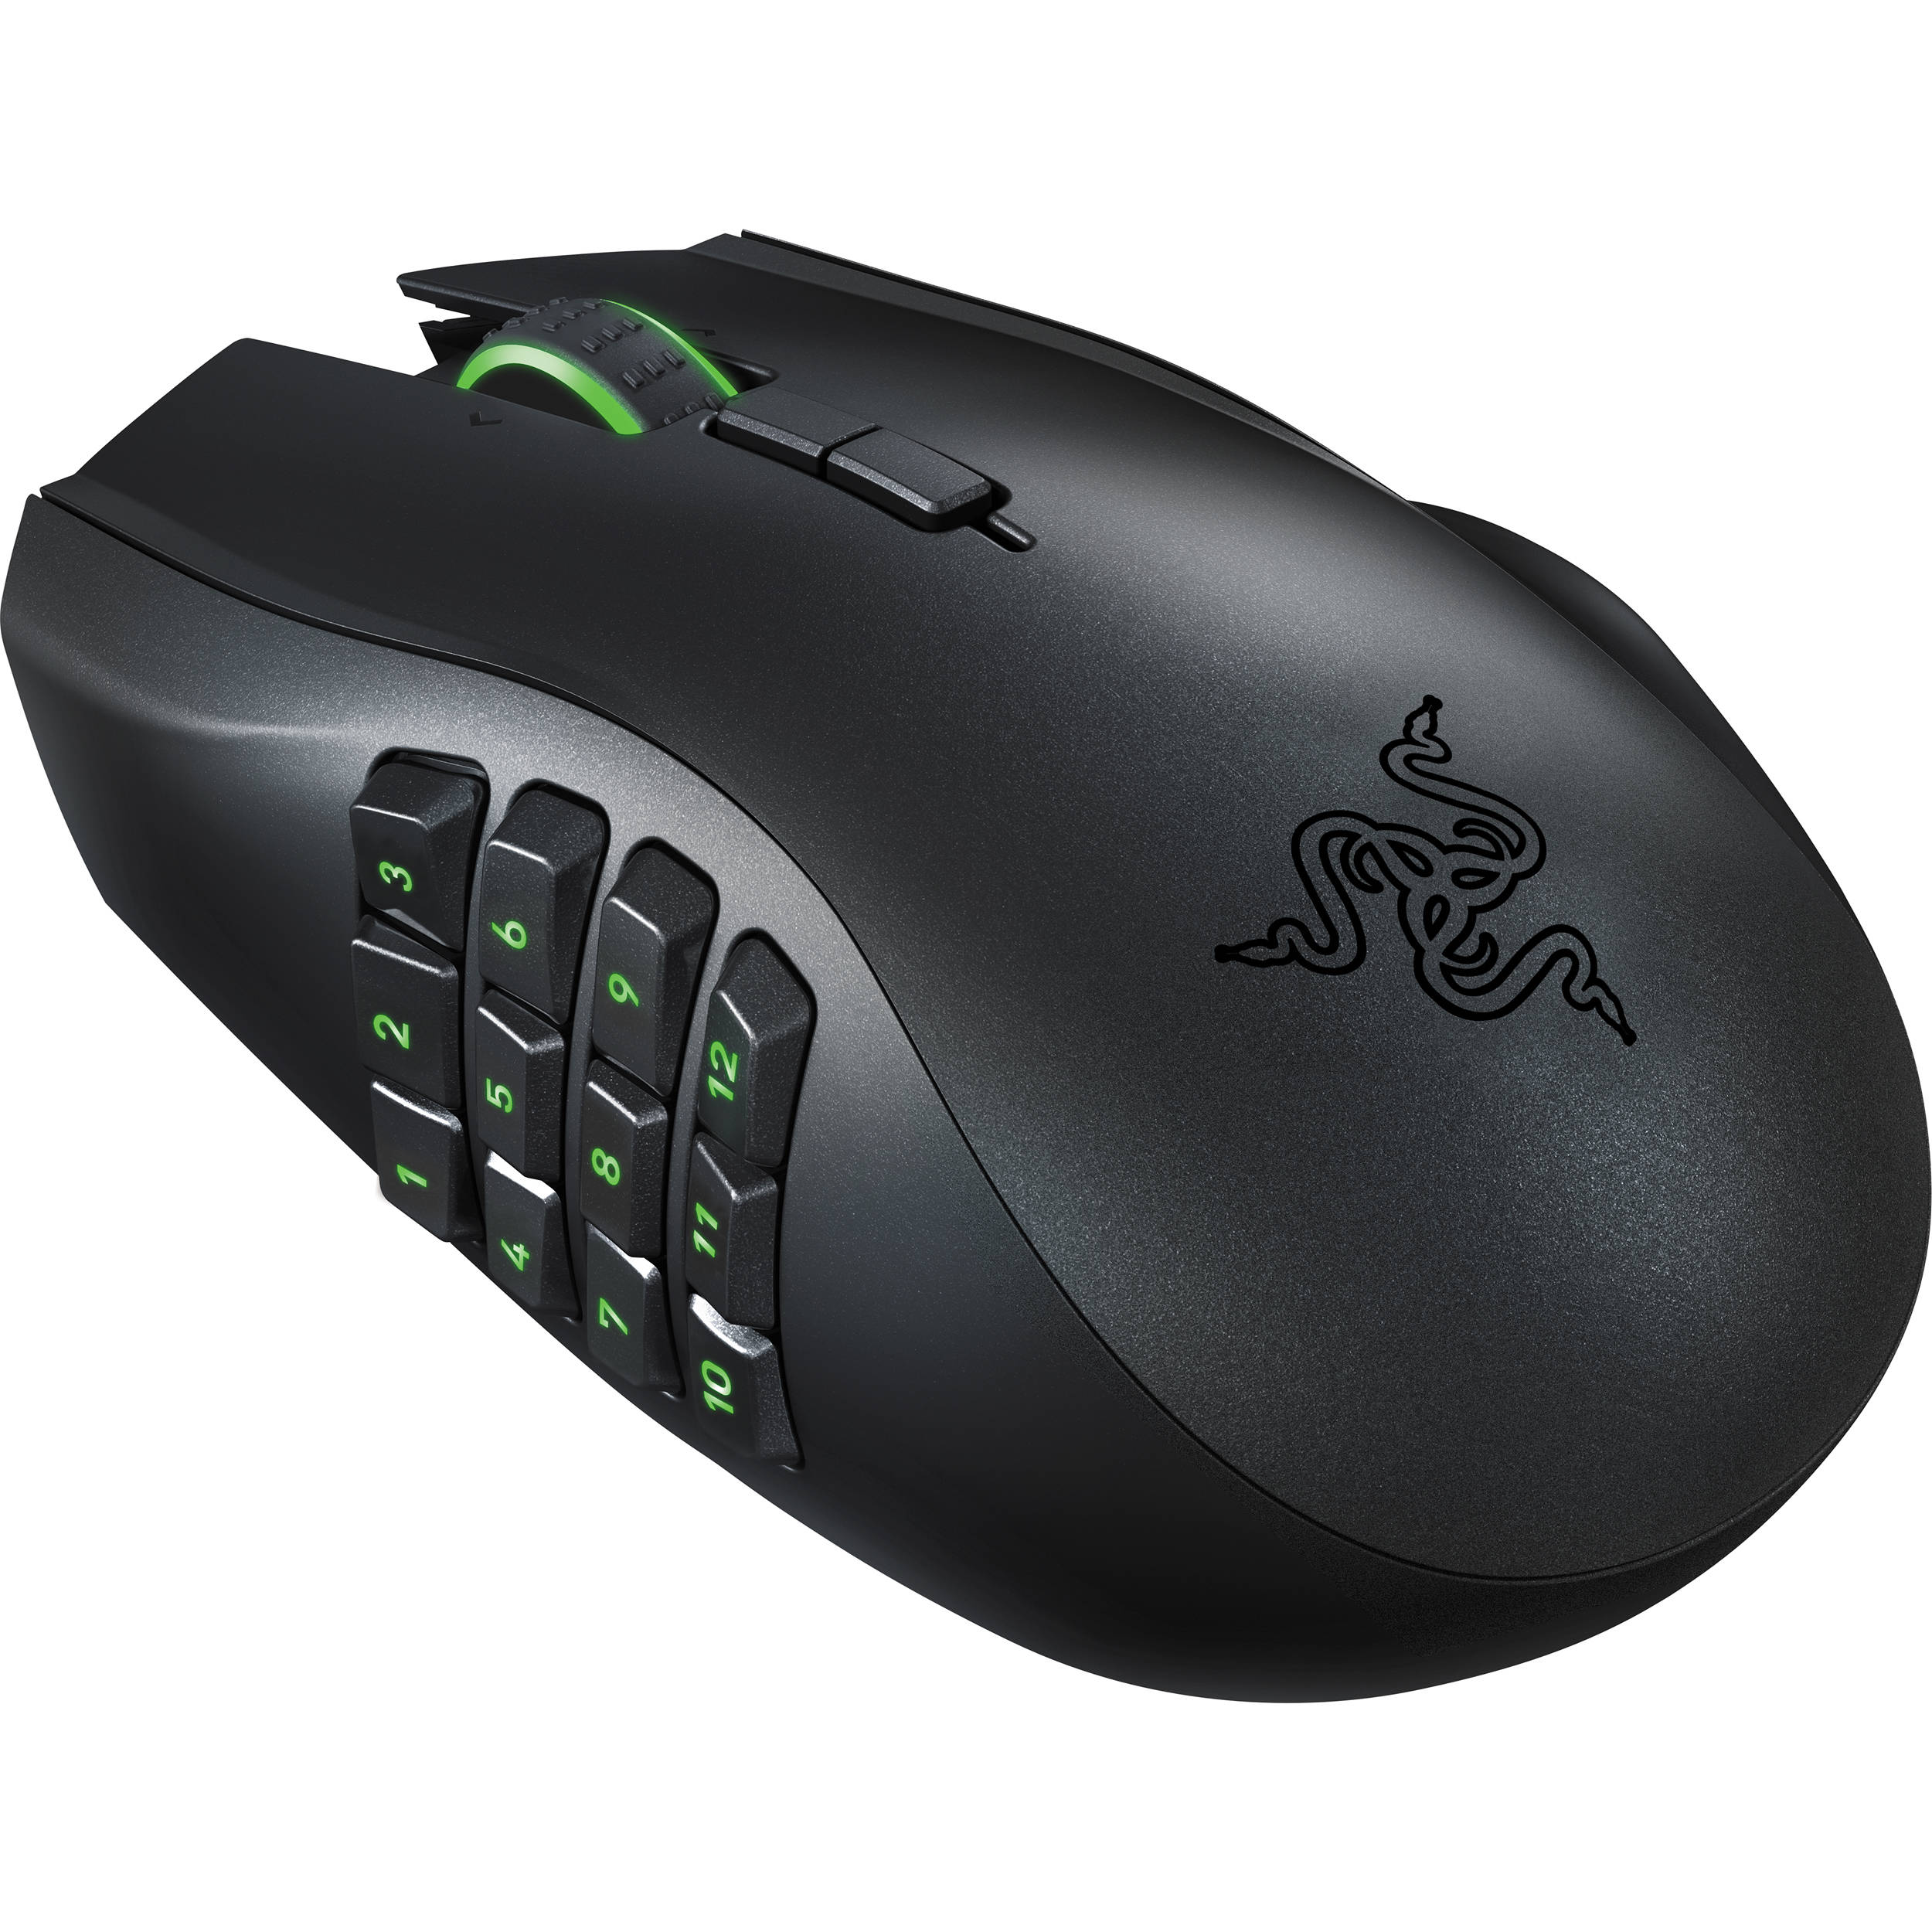 Razer Naga Epic Chroma MMO Wireless Gaming Mouse by Razer